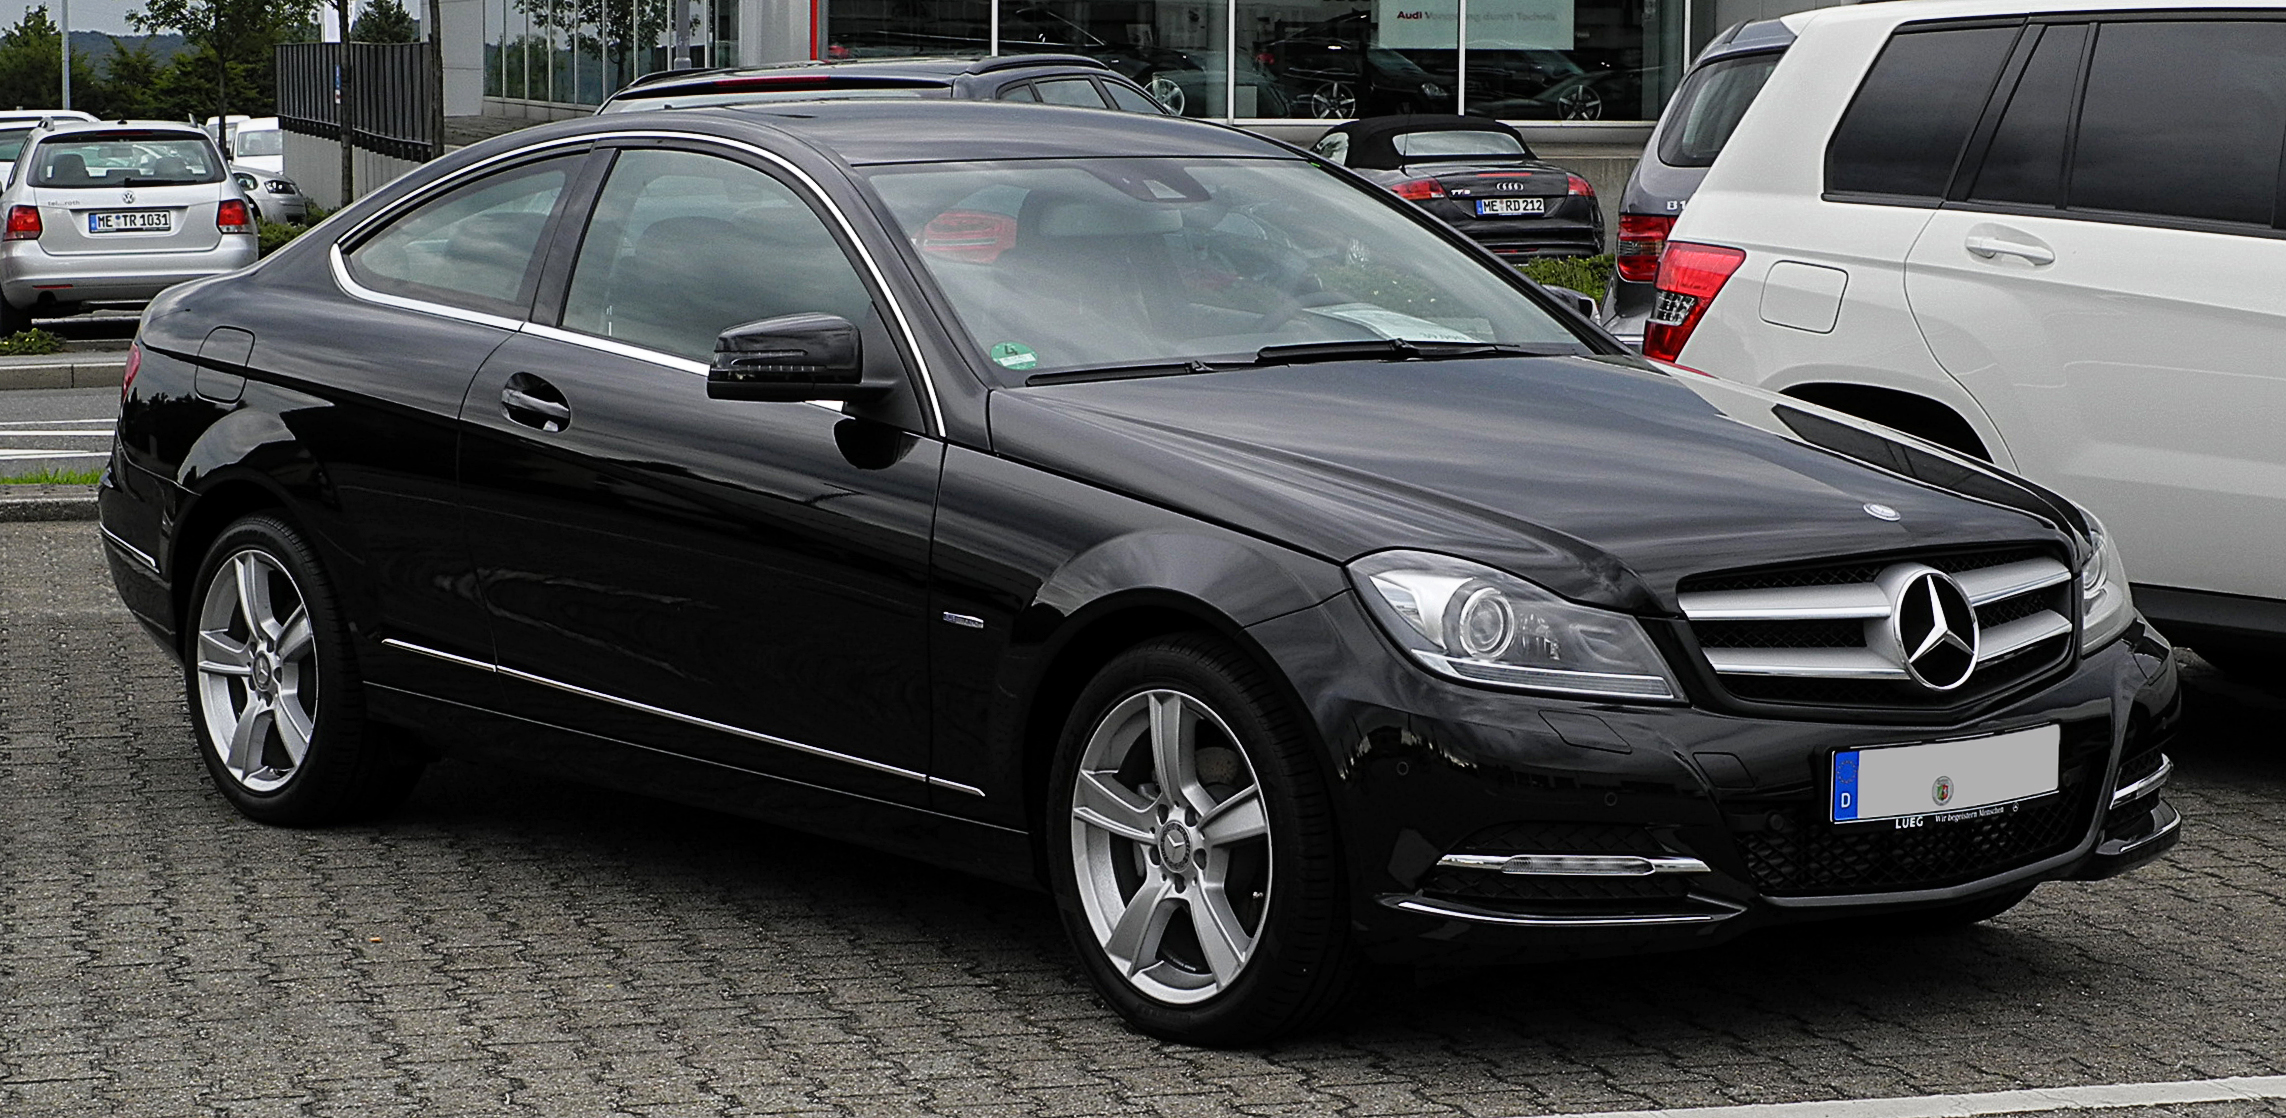 file mercedes benz c 180 blueefficiency coup c 204 frontansicht 2 10 juli 2011 velbert. Black Bedroom Furniture Sets. Home Design Ideas